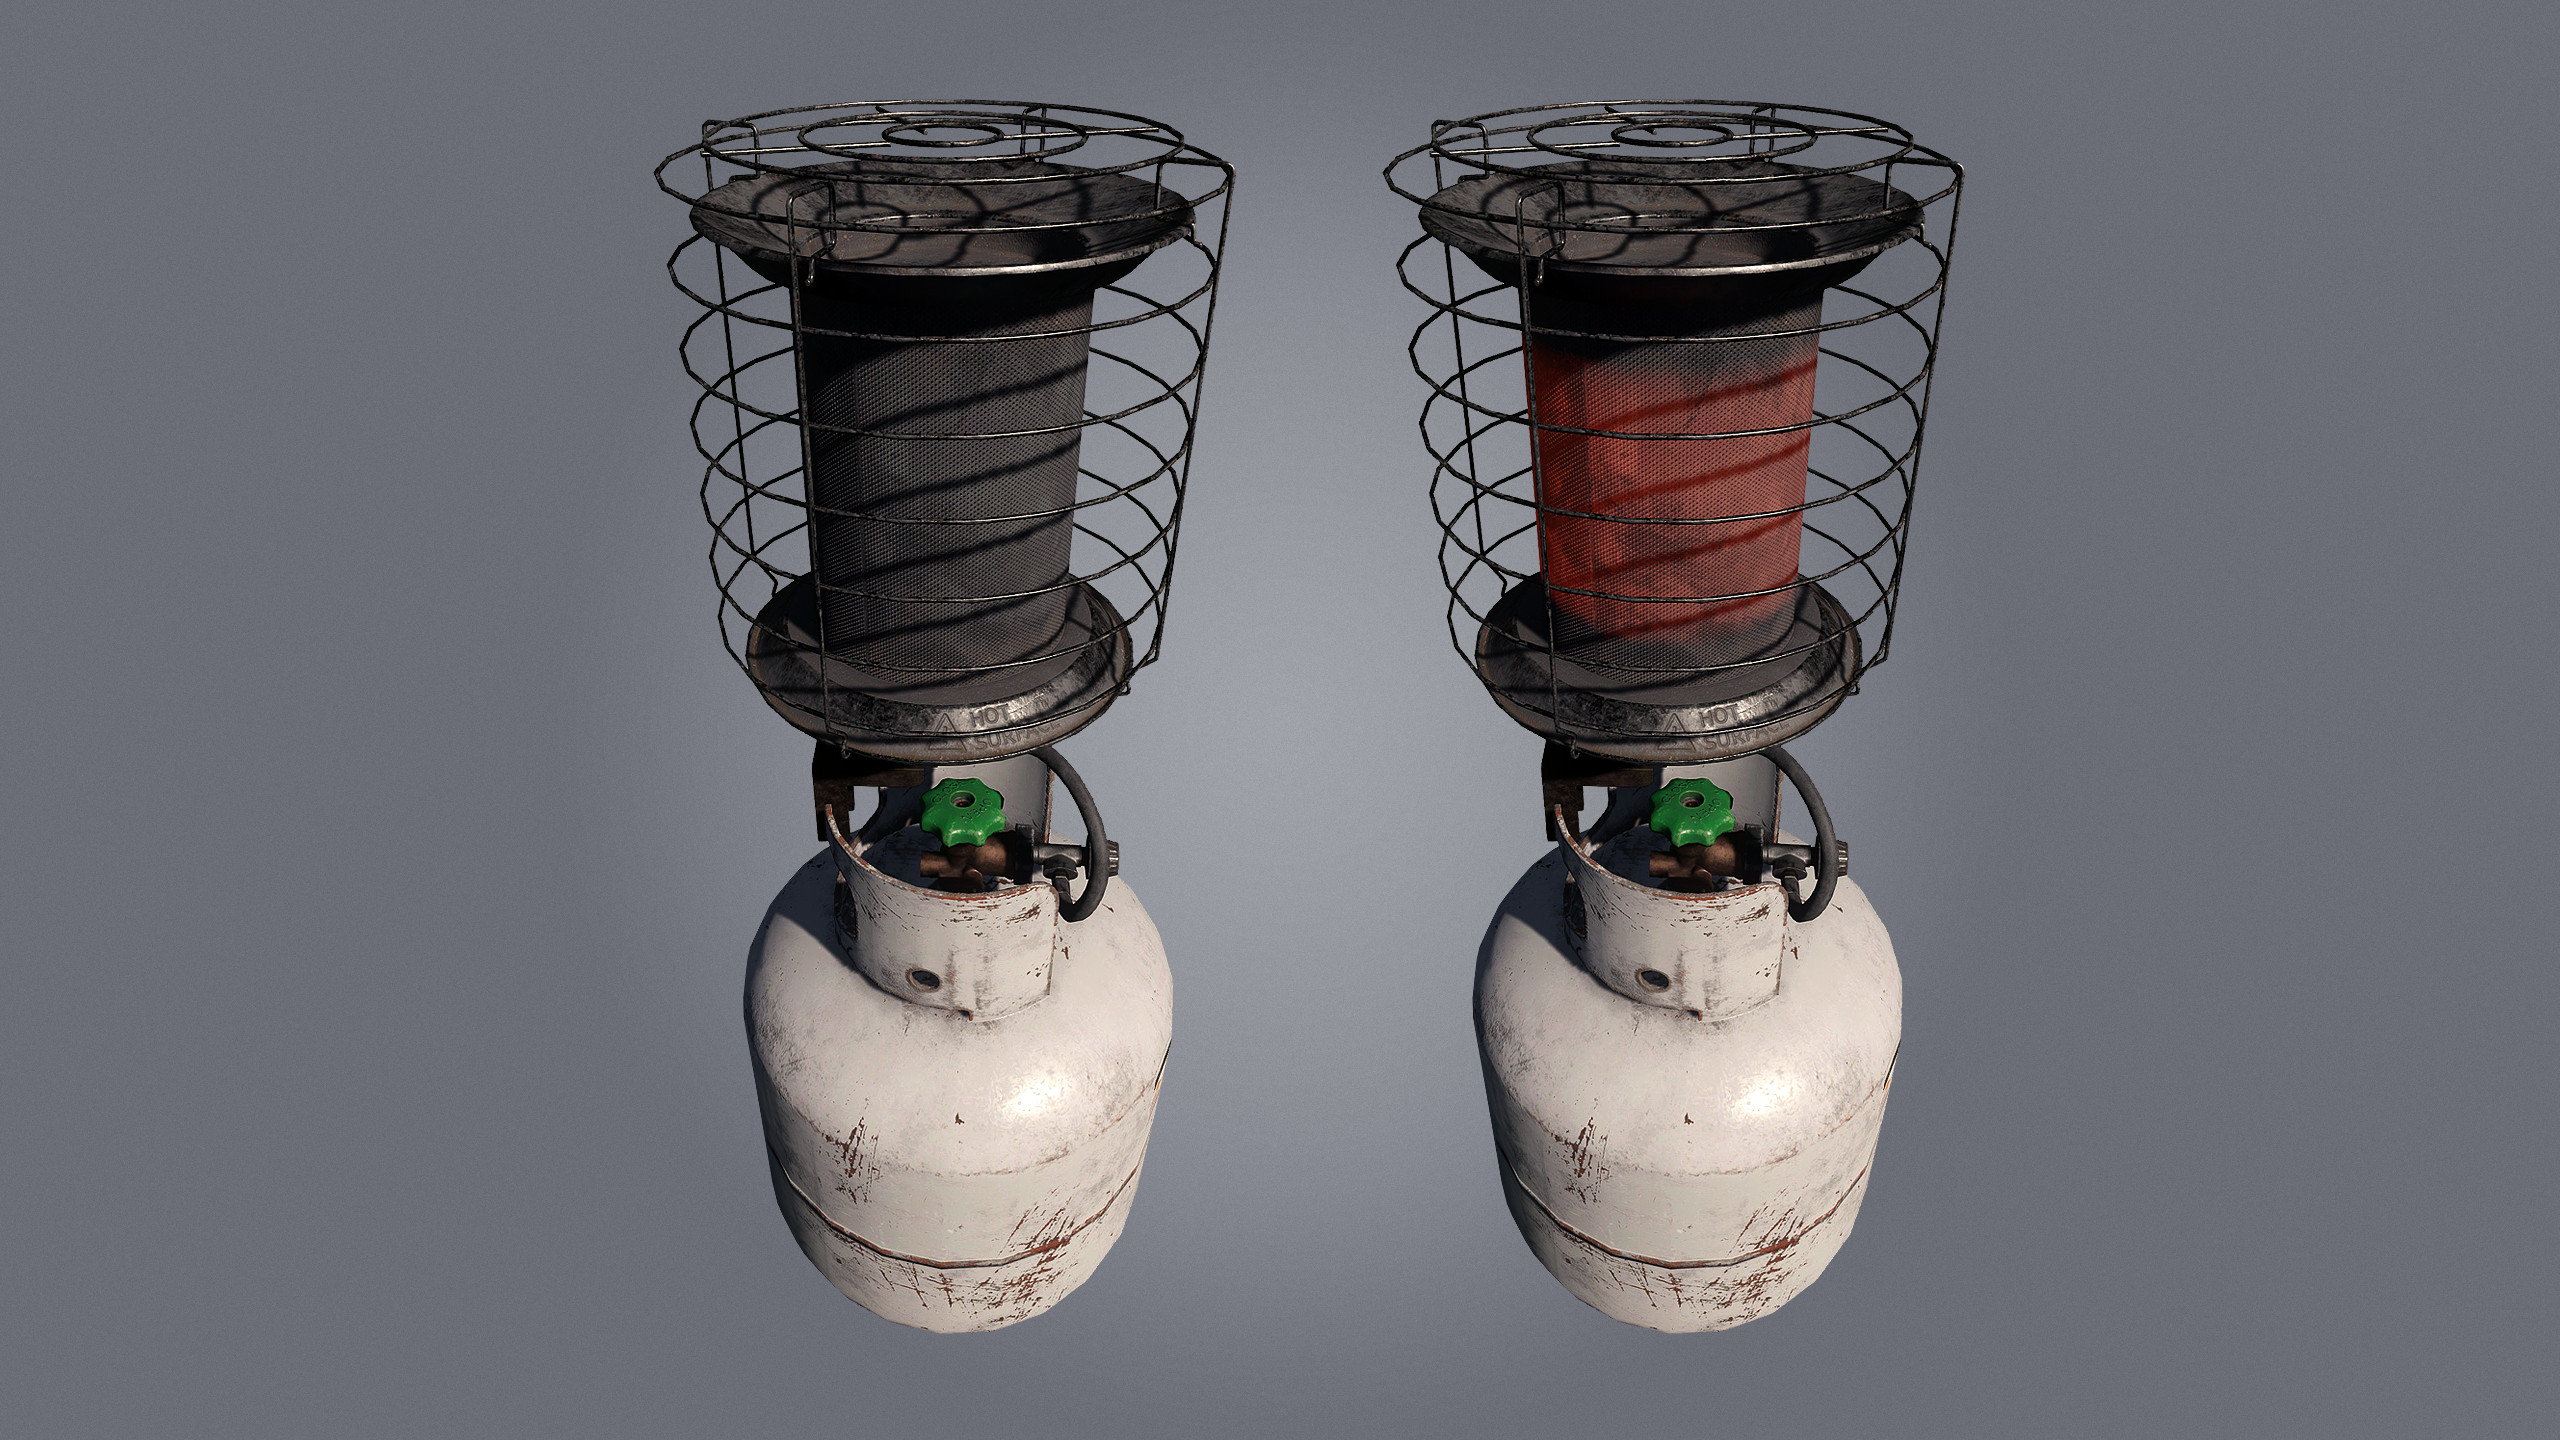 Gas Bottle and Heater Combo, used in basebuilding as heating